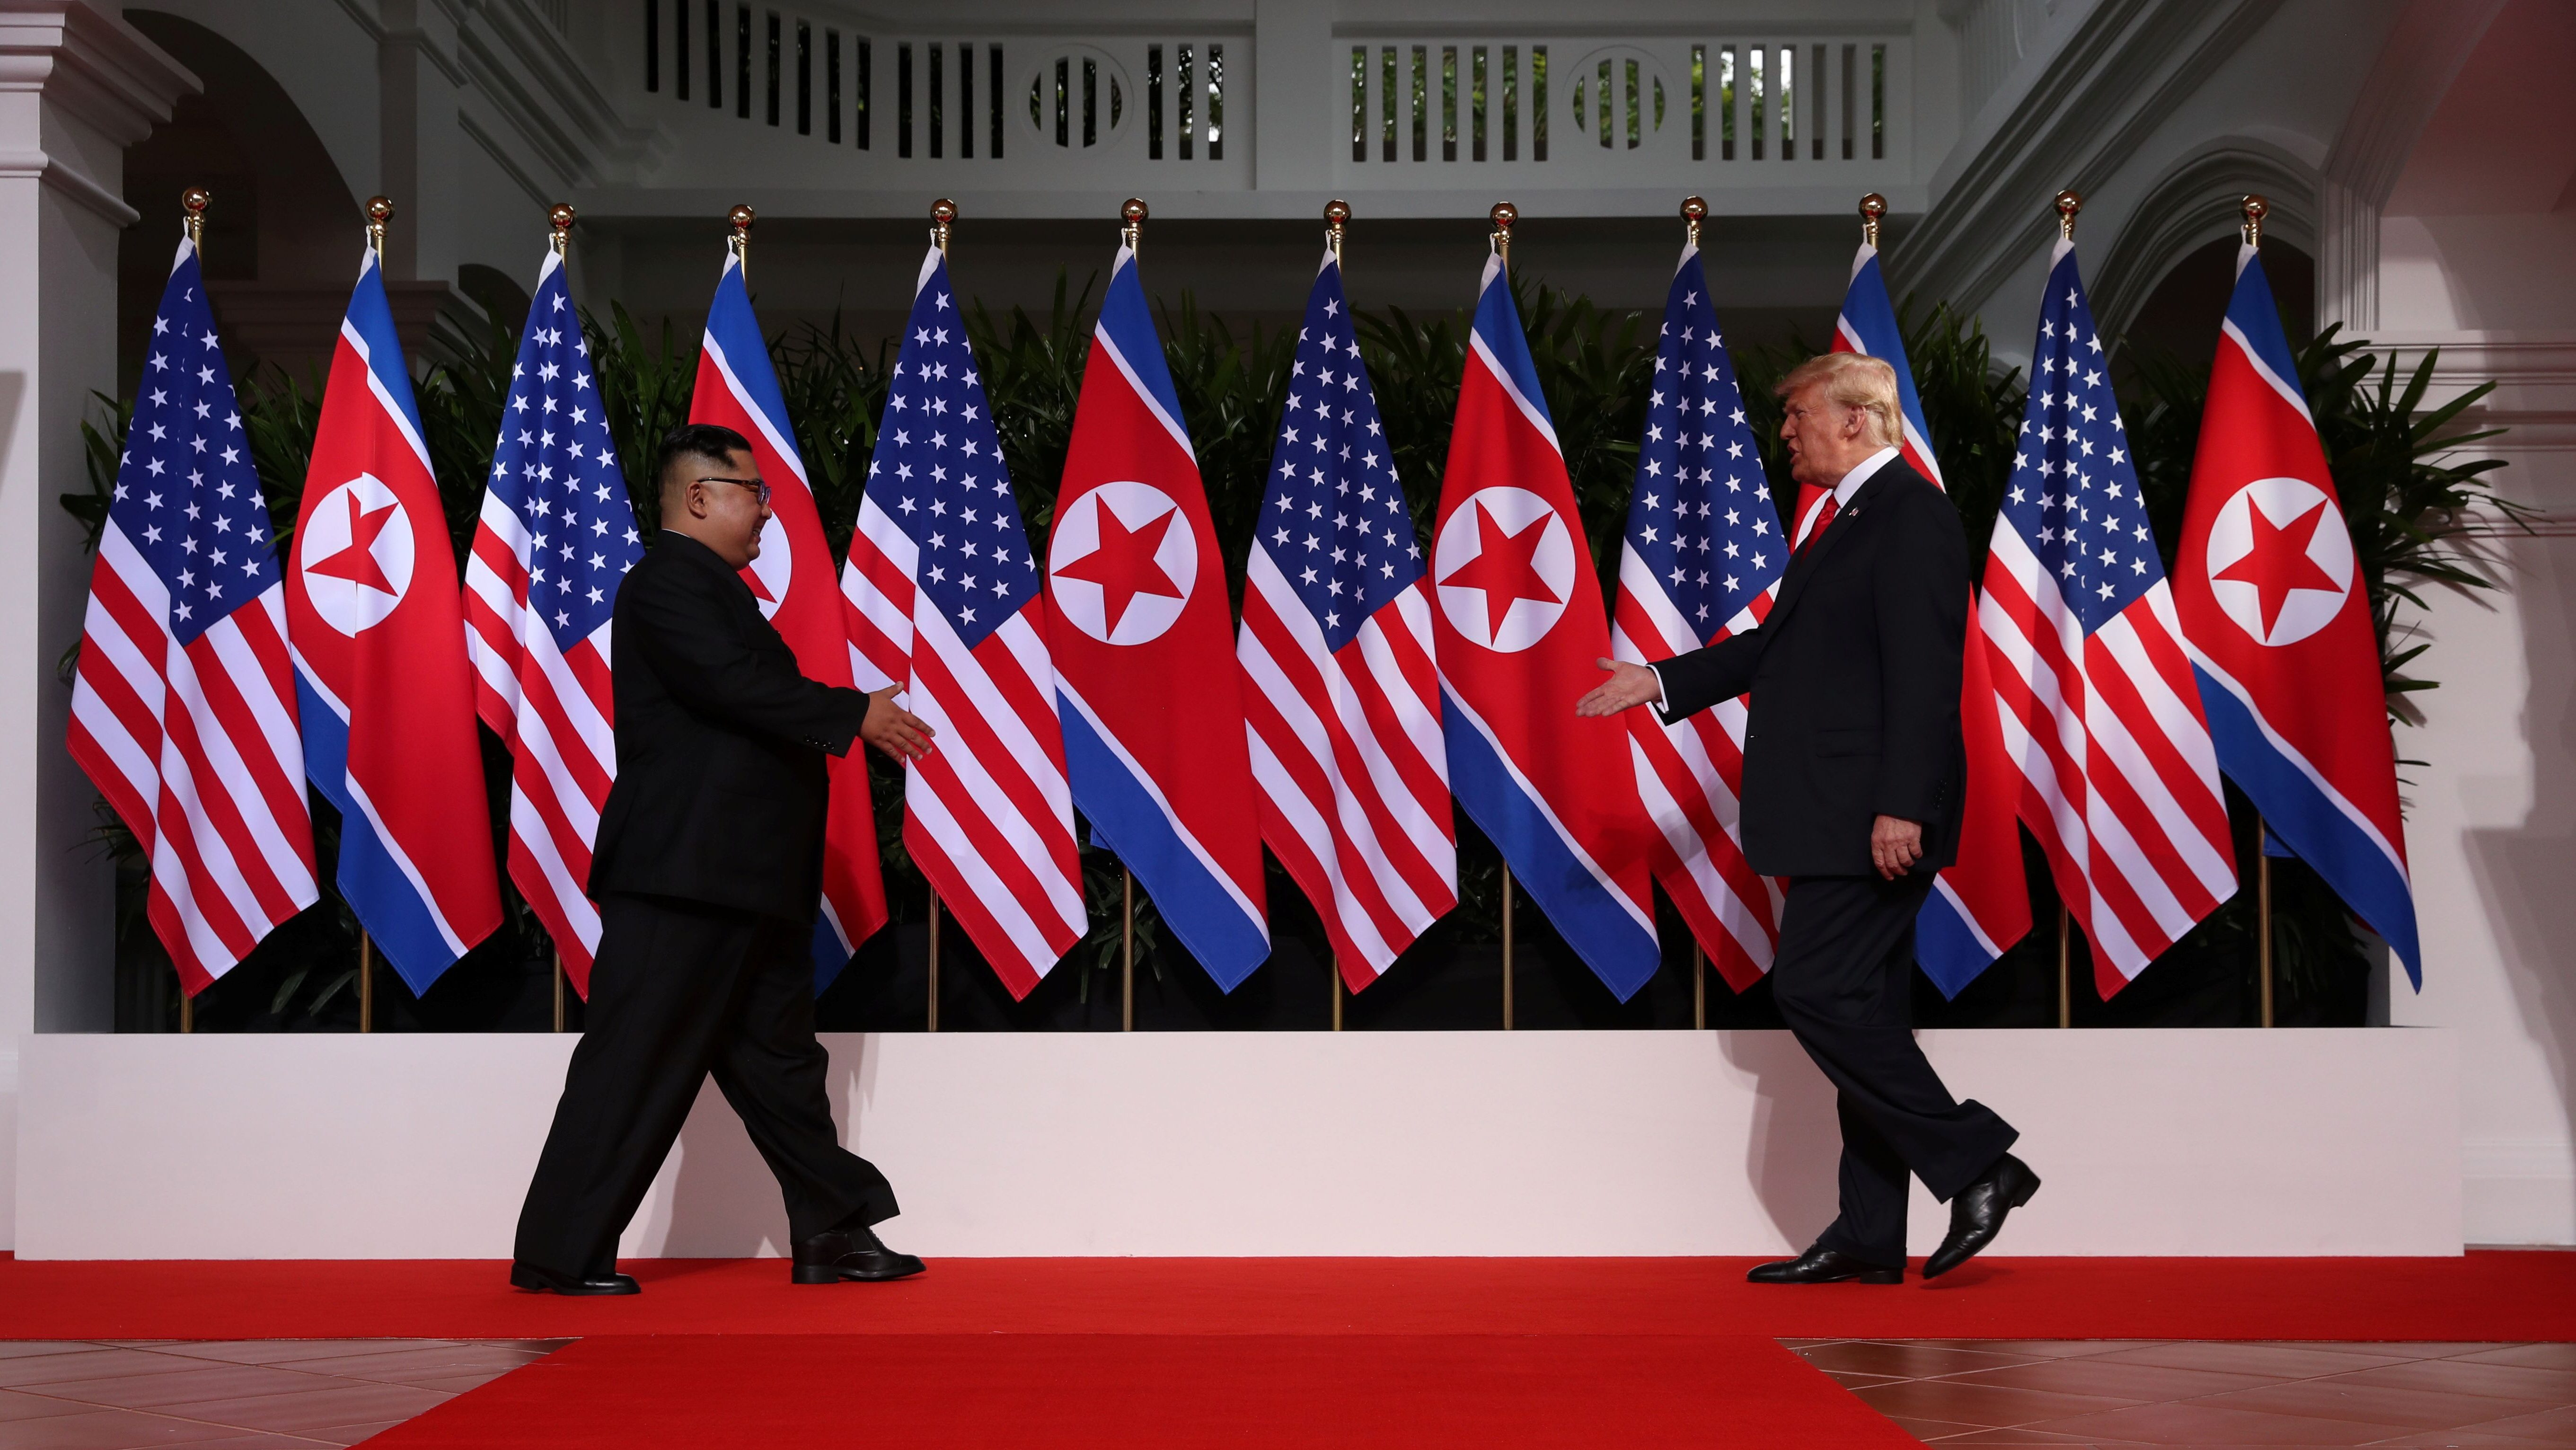 U.S. President Donald Trump and North Korean leader Kim Jong Un prepare to shake hands at the Capella Hotel on Sentosa island in Singapore June 12.